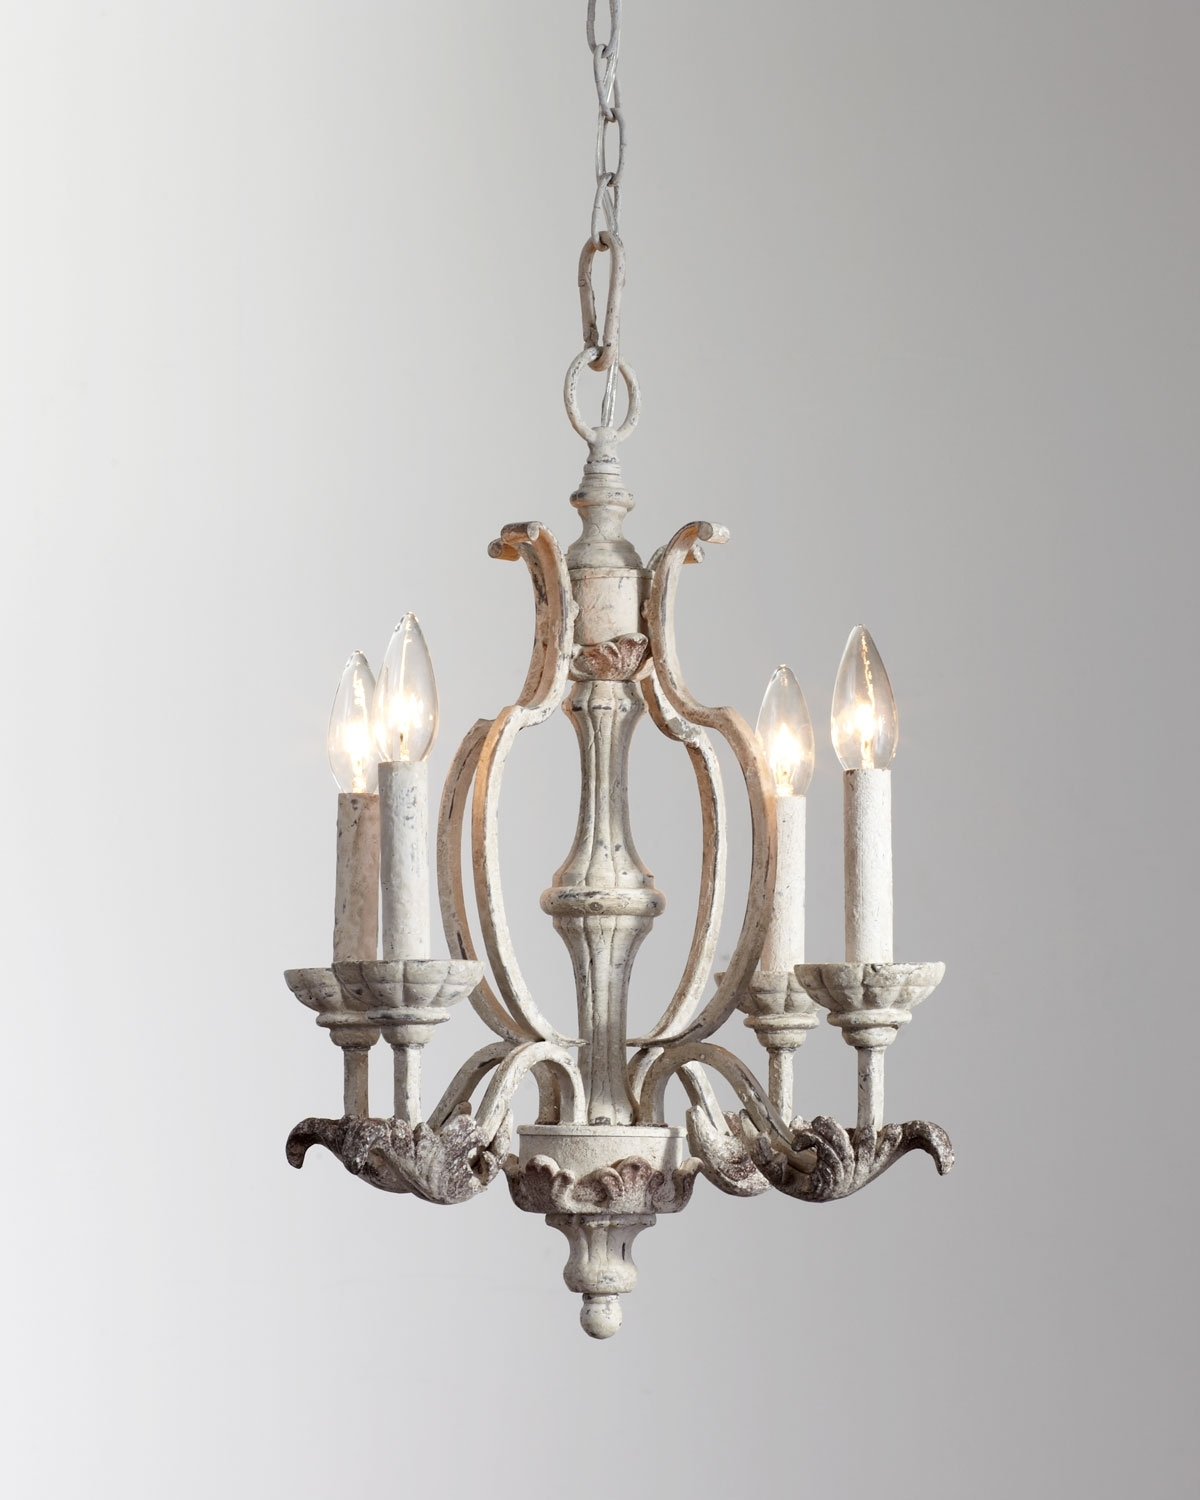 Small White Chandeliers For Recent Chandelier: Excellent Small Chandeliers Mini Chandelier For Lockers (View 10 of 20)